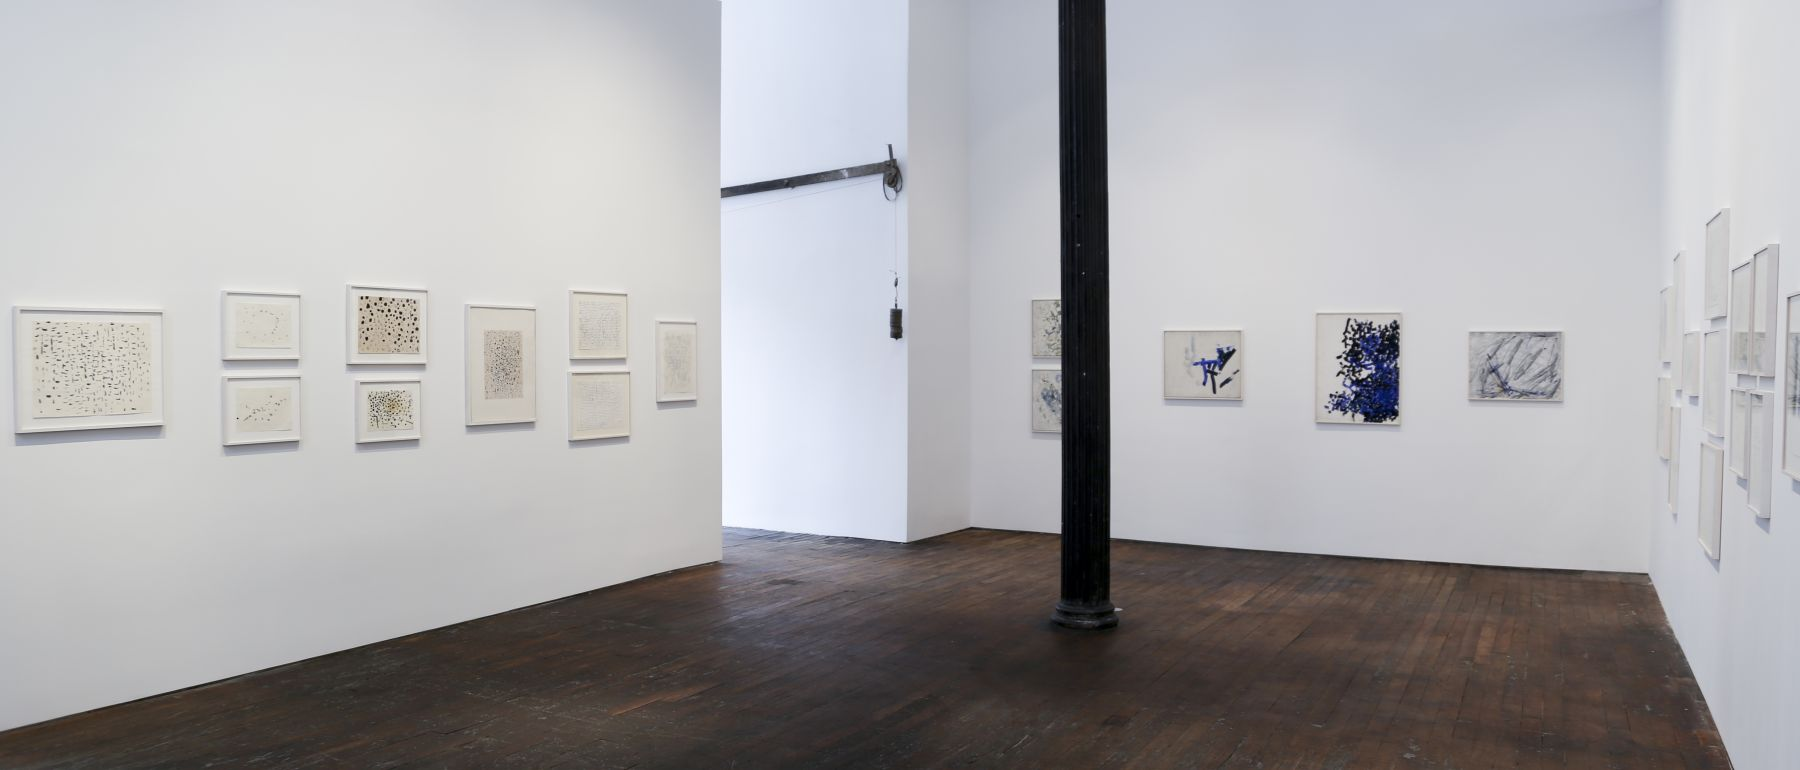 Charlotte Posenenske: Early Works – installation view 1